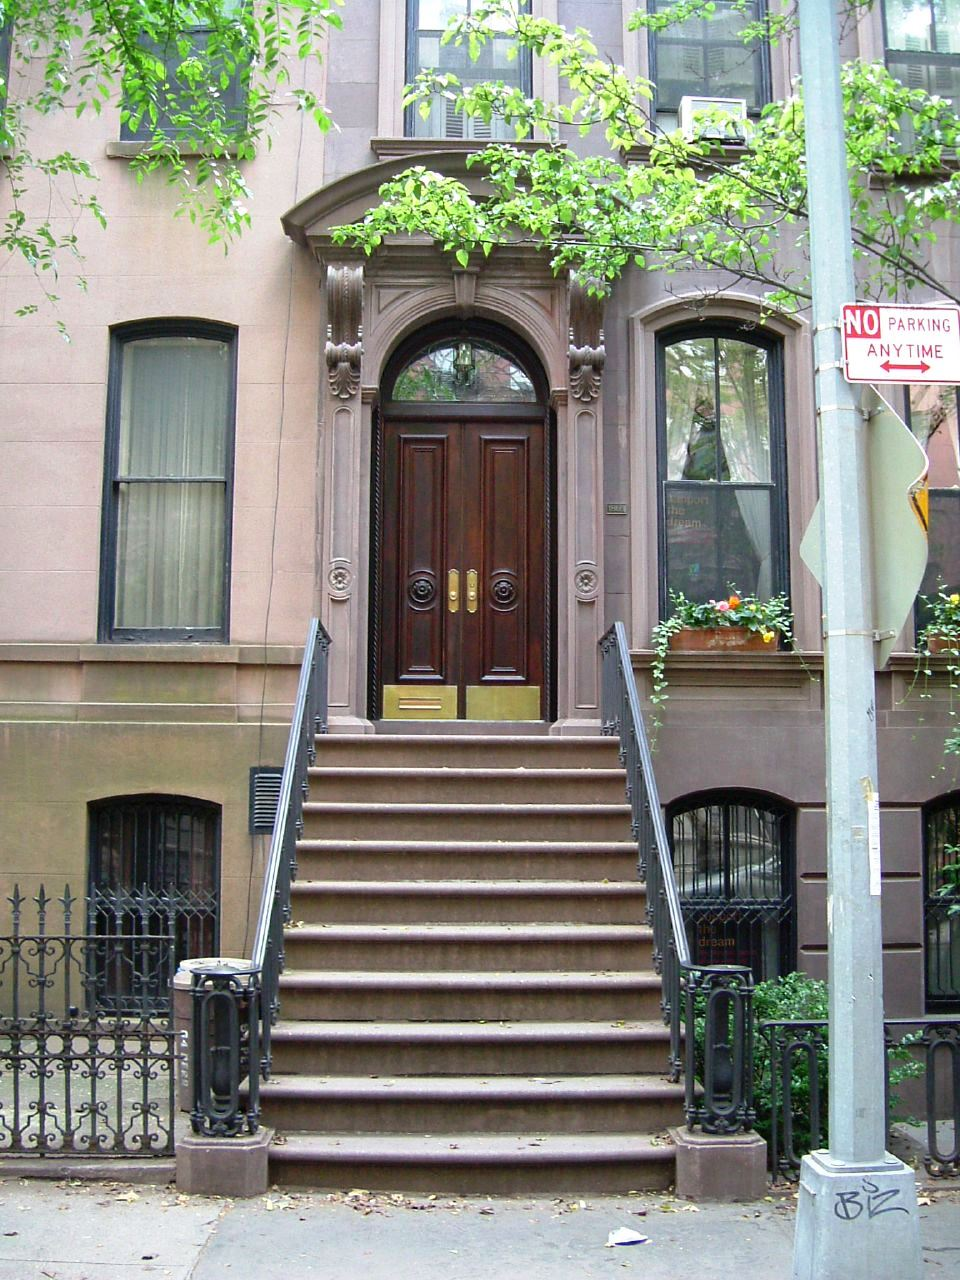 Casa Carrie Sexo en Nueva York Greenwich Village